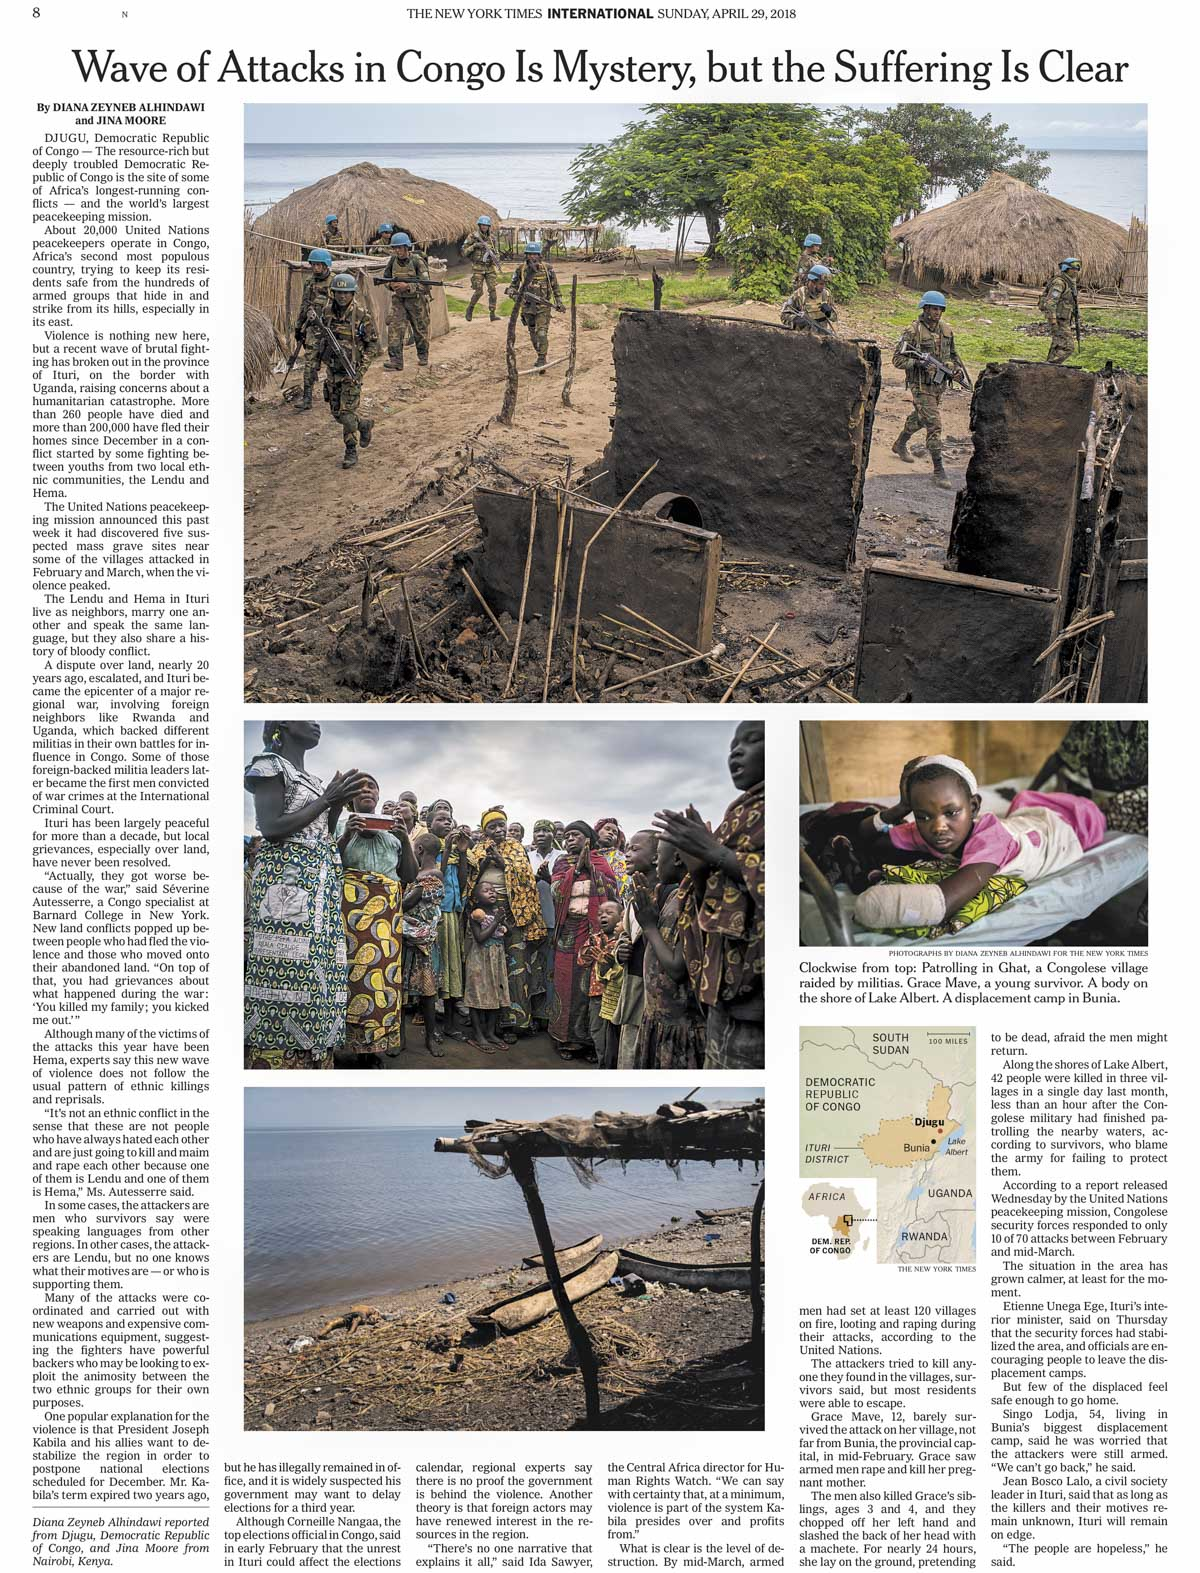 CLICK on title for online version     Wave of Attacks in Congo Is Mystery, but Suffering Is Clear  | The New York Times, page A8, Apr 29, 2018